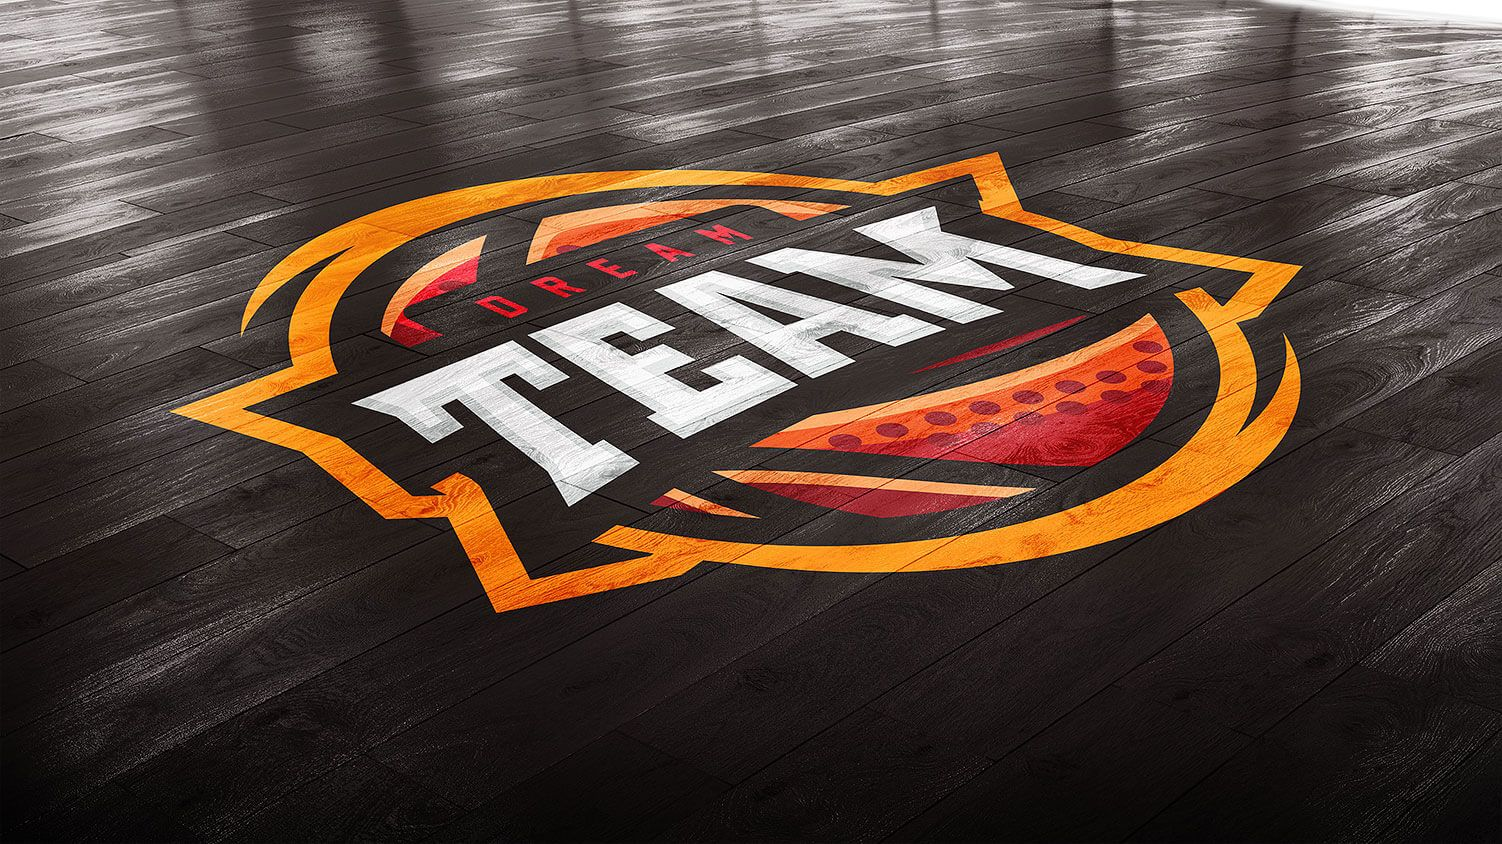 Basketball Court Photoshop Template Mockup | Floor Graphics ...